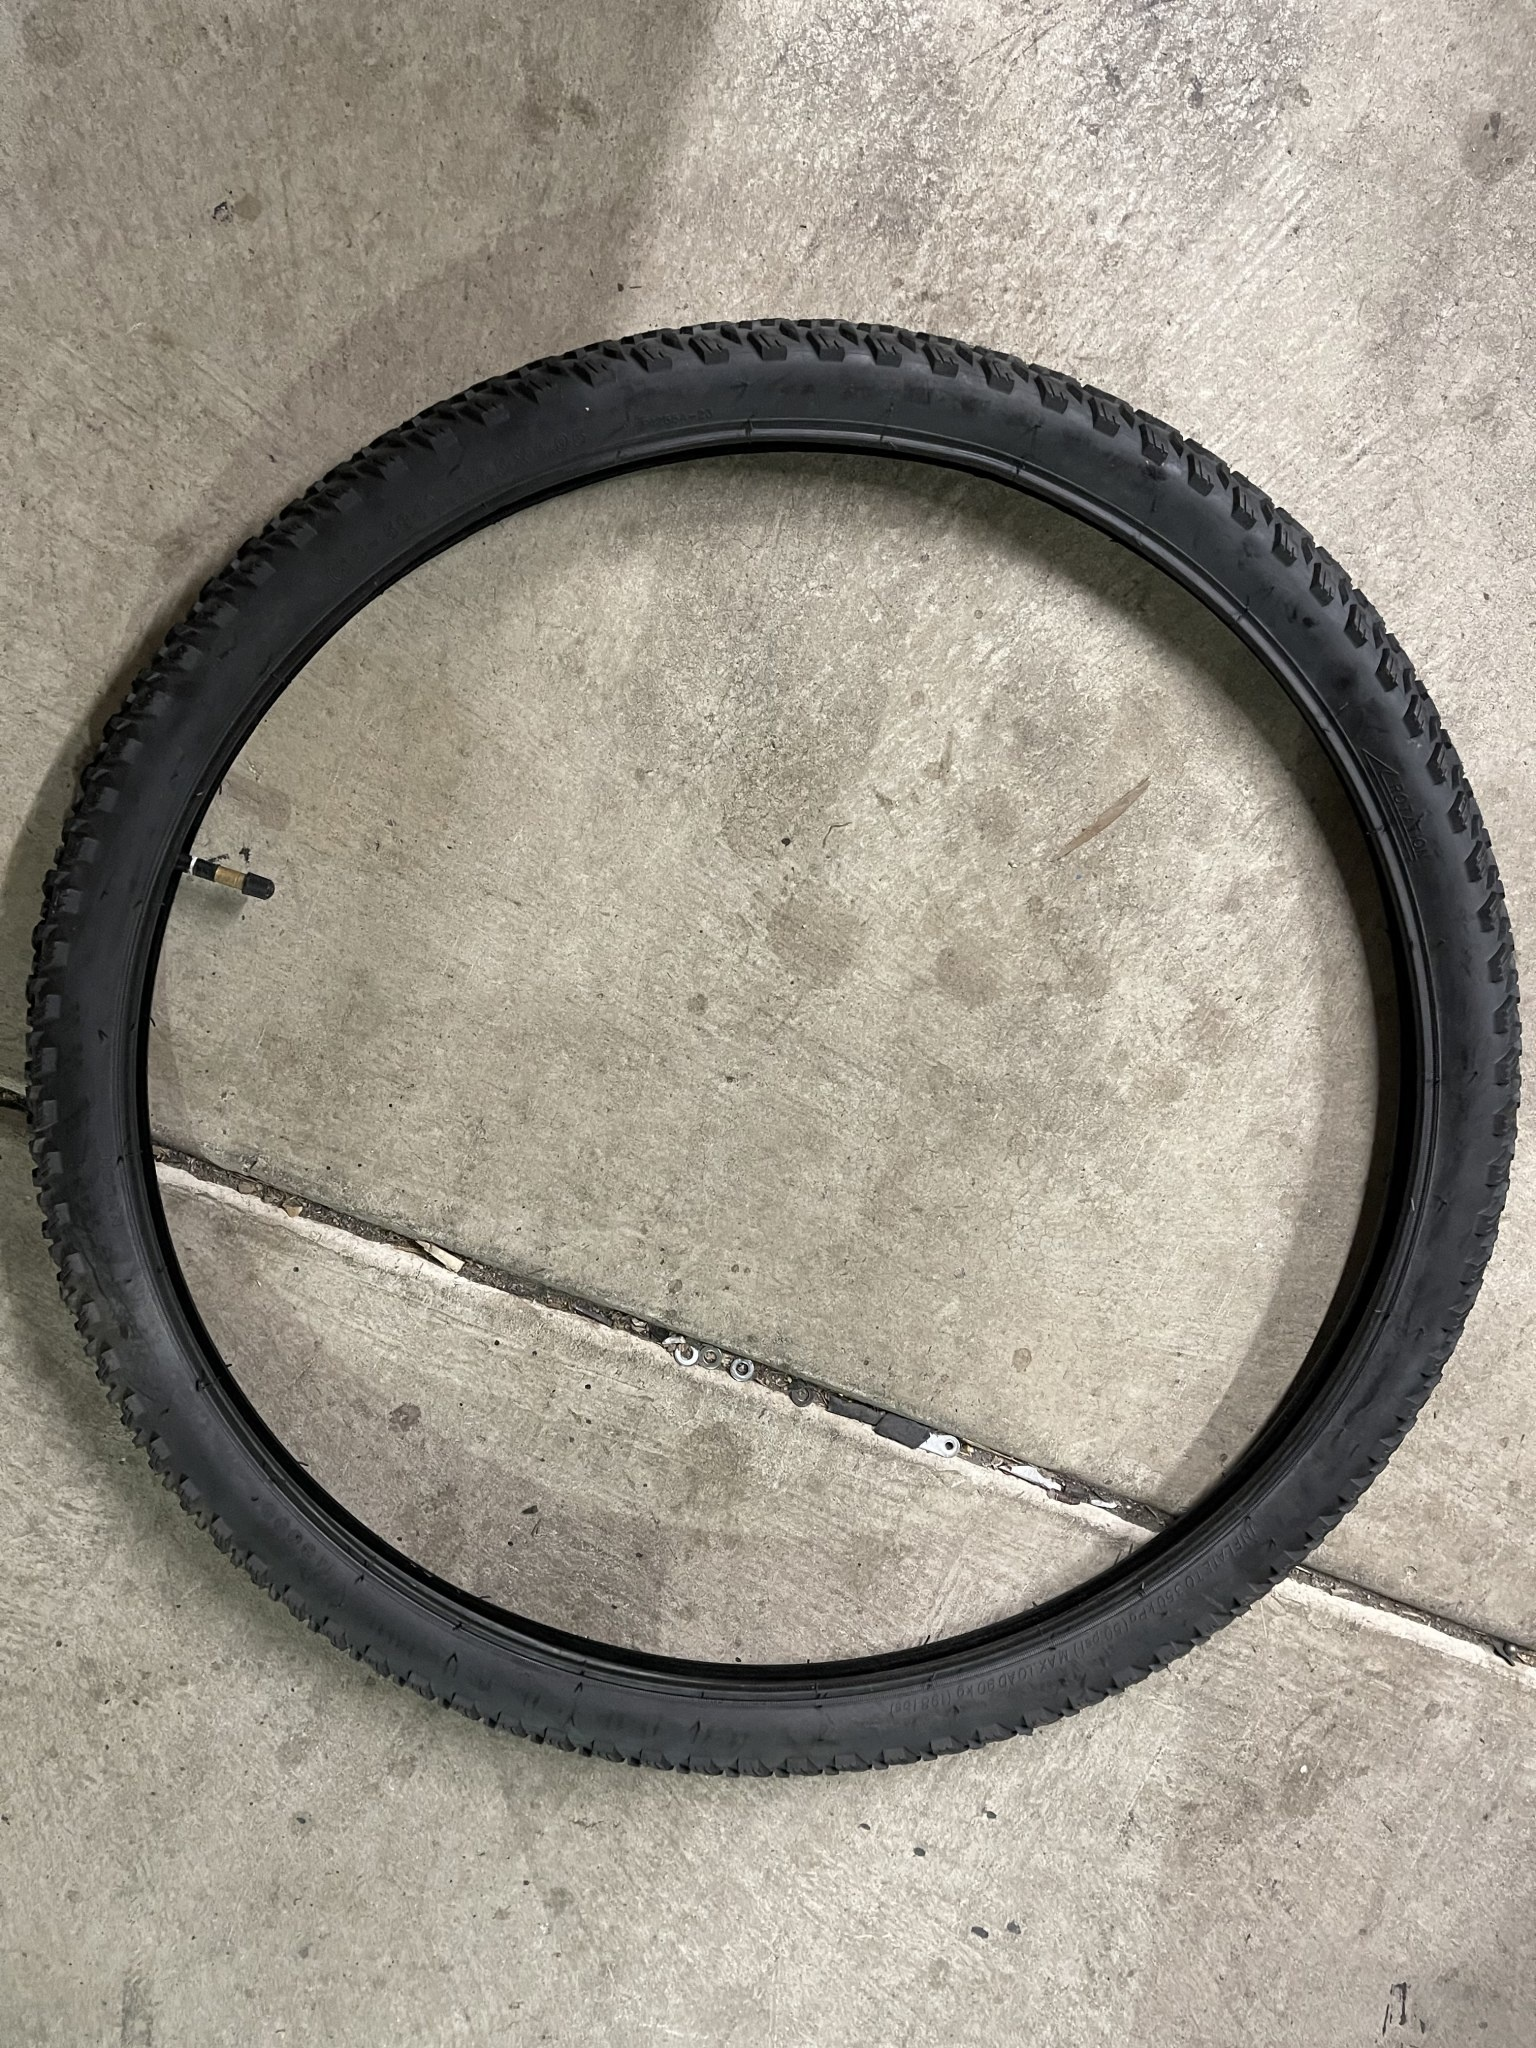 Bulk 29 X 2.10 Black Tire & Tube